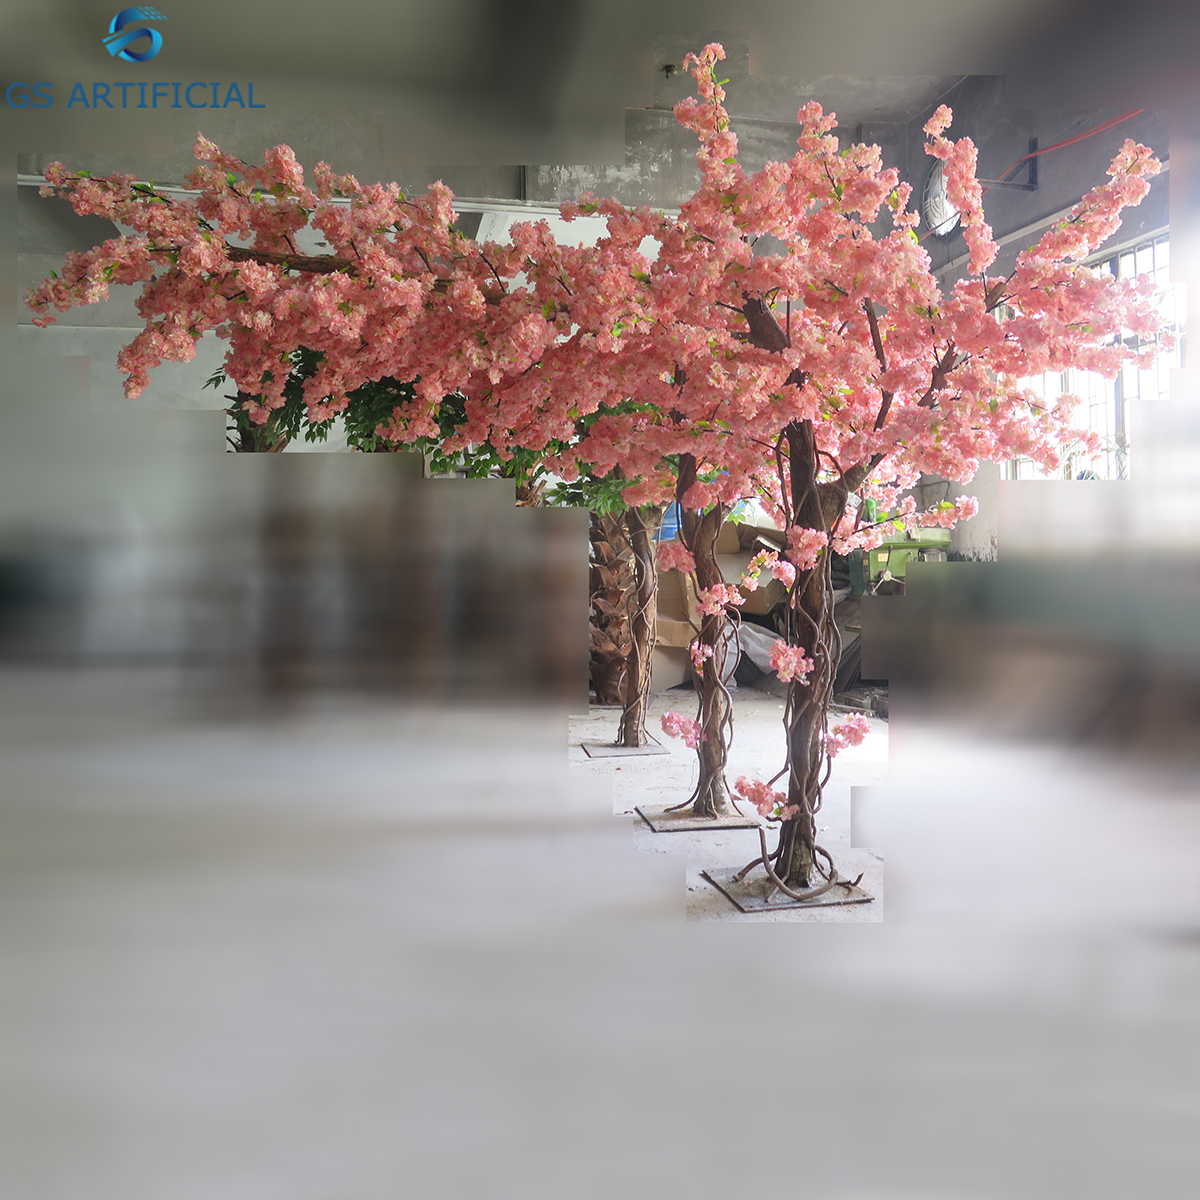 Artificial Indoor Outdoor Cherry Blossom Tree Wedding Decoration Buy Artificial Cherry Blossom Tree Wedding Decoration Artificial Cherry Blossom Tree Wedding Decoration Cherry Blossom Tree Artificial Product On Alibaba Com